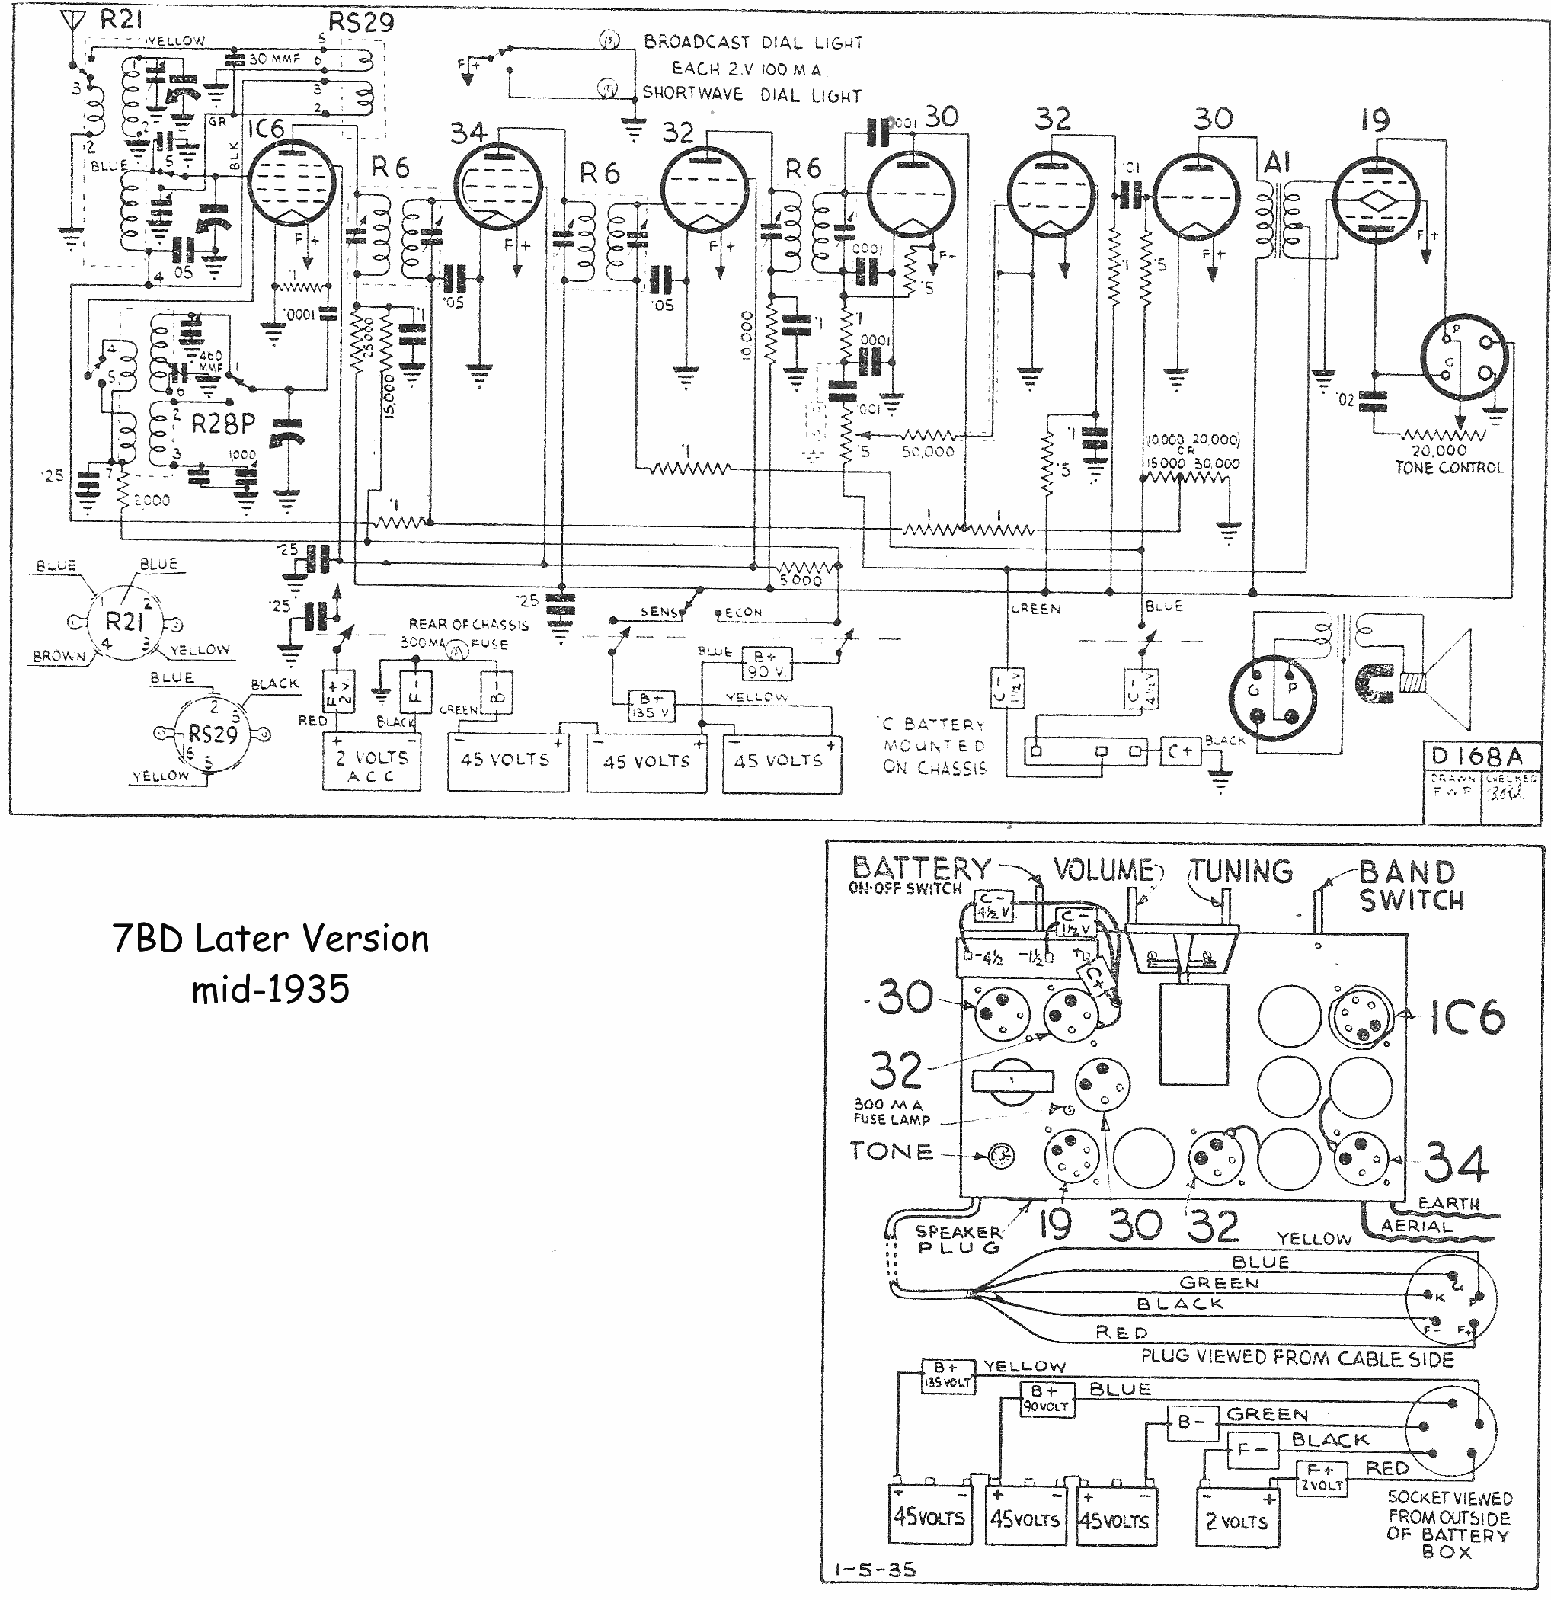 1934 Courtenay 7BD v2 Schematic